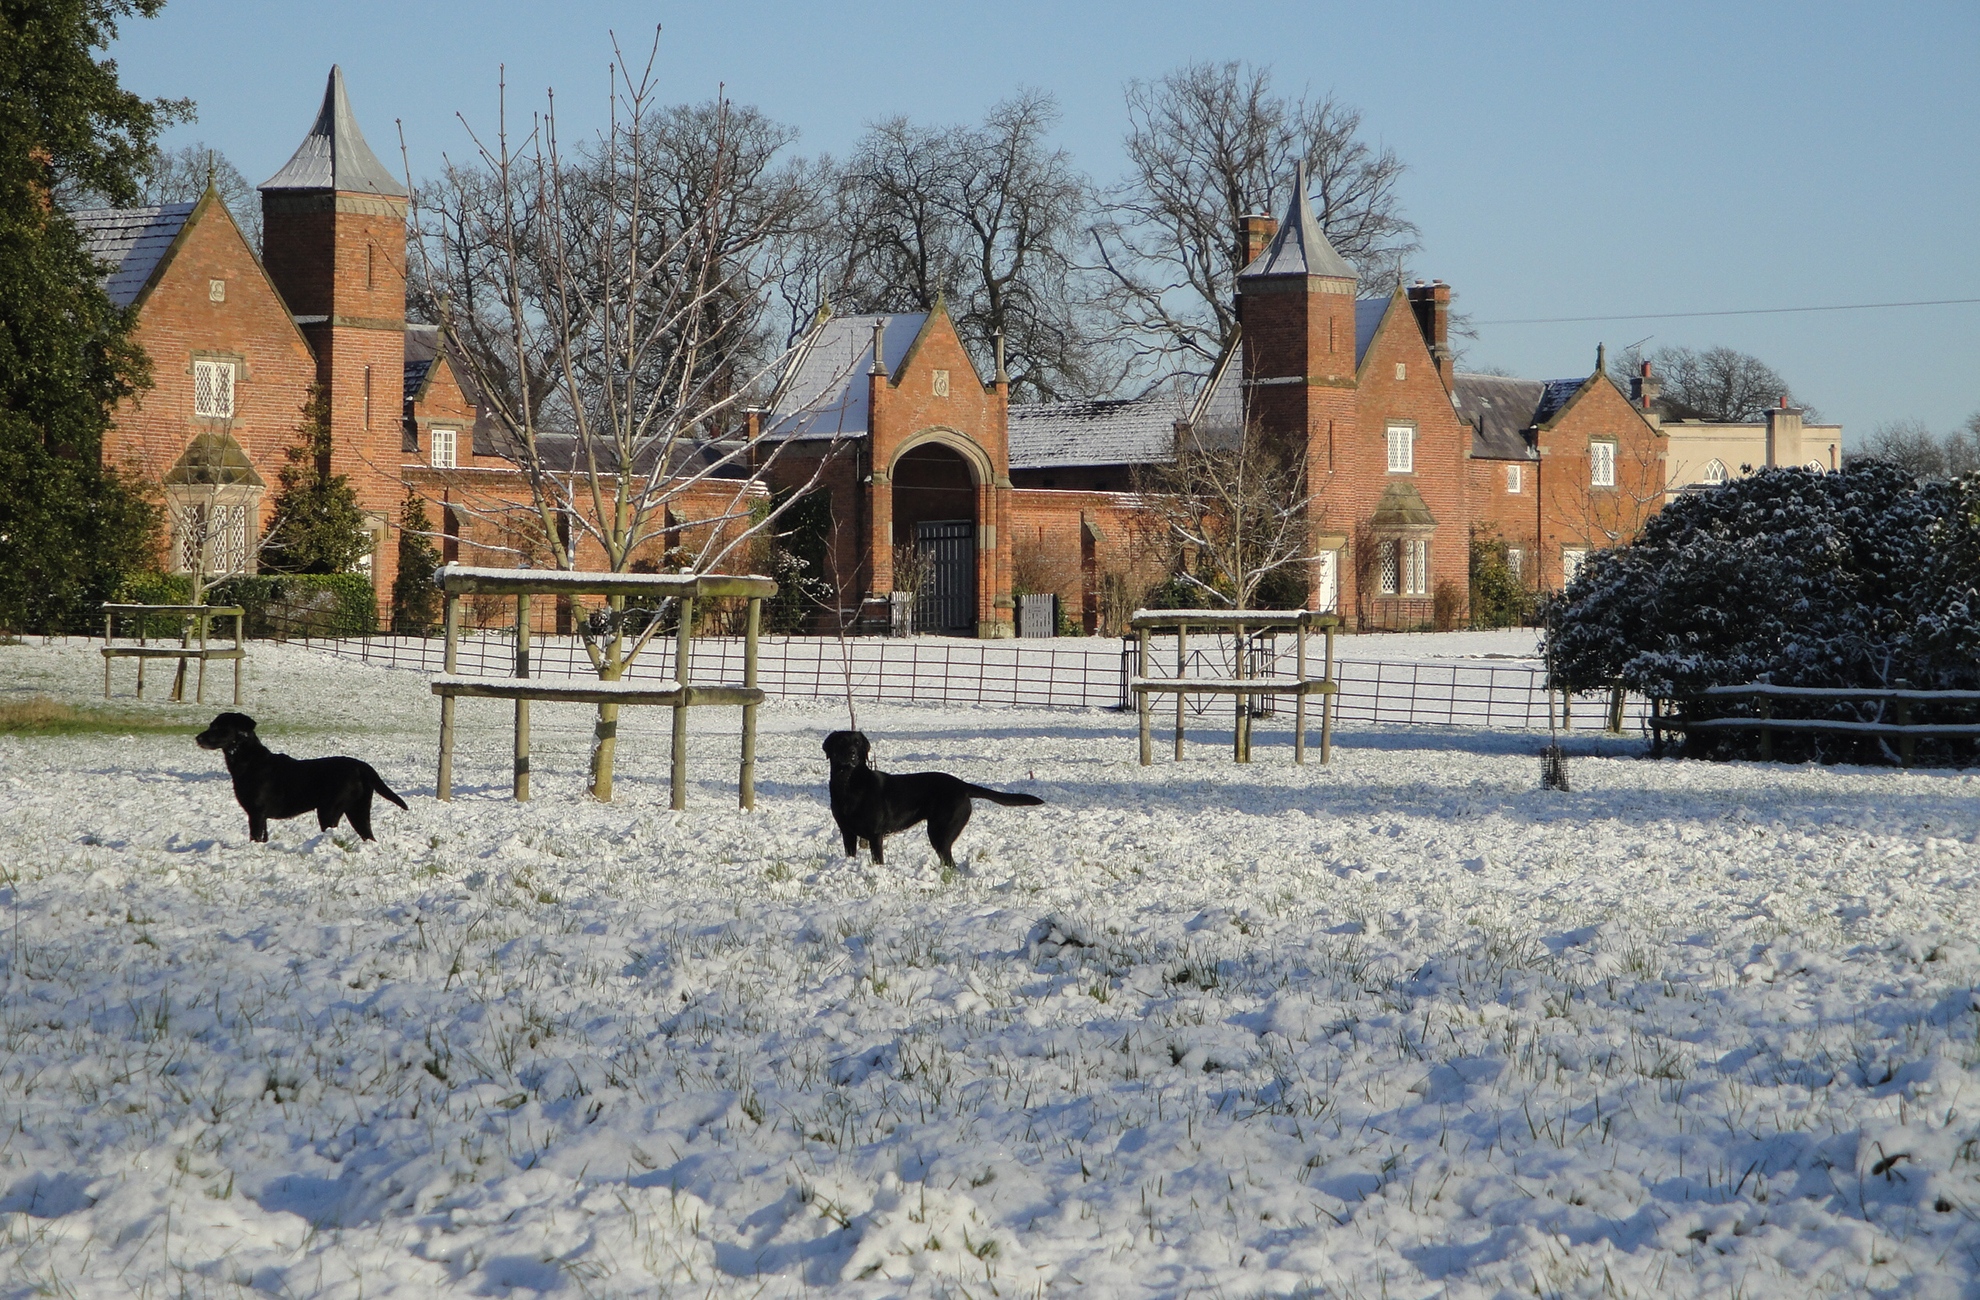 Dogs play in the snow outside the cottages at Combermere Abbey